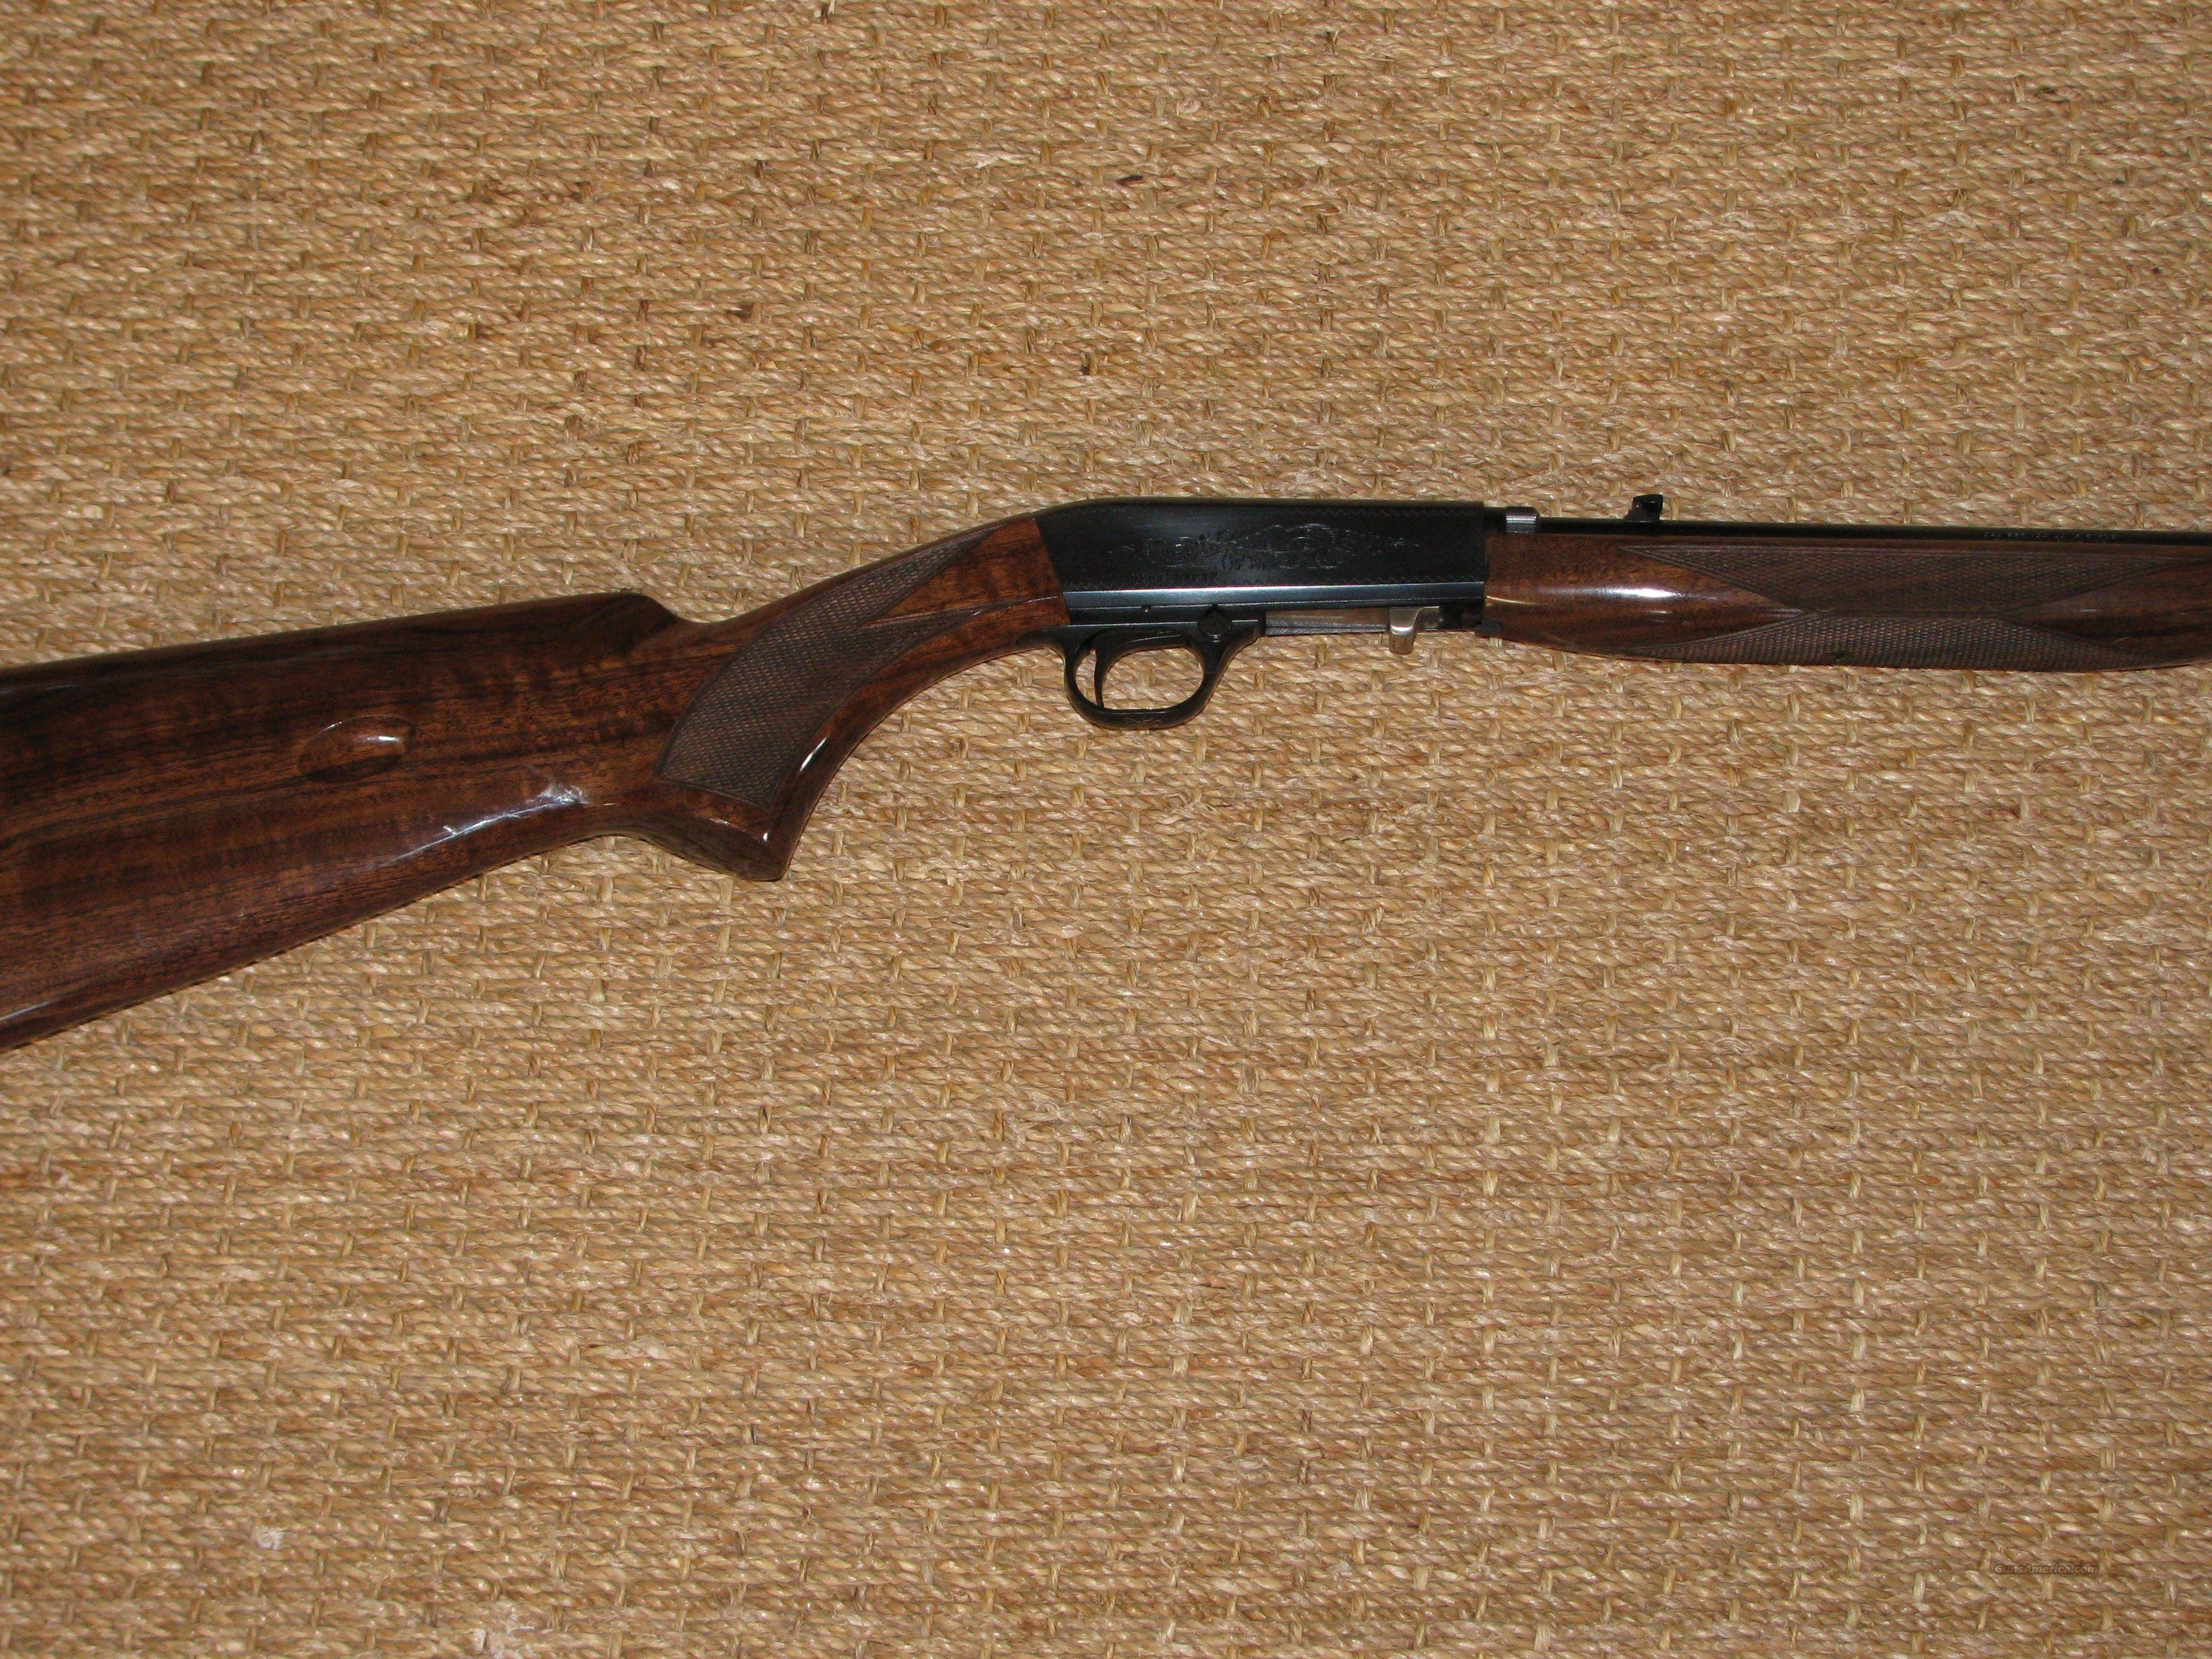 Browning Semi-Auto 22 Long Rifle  Guns > Rifles > Browning Rifles > Semi Auto > Hunting